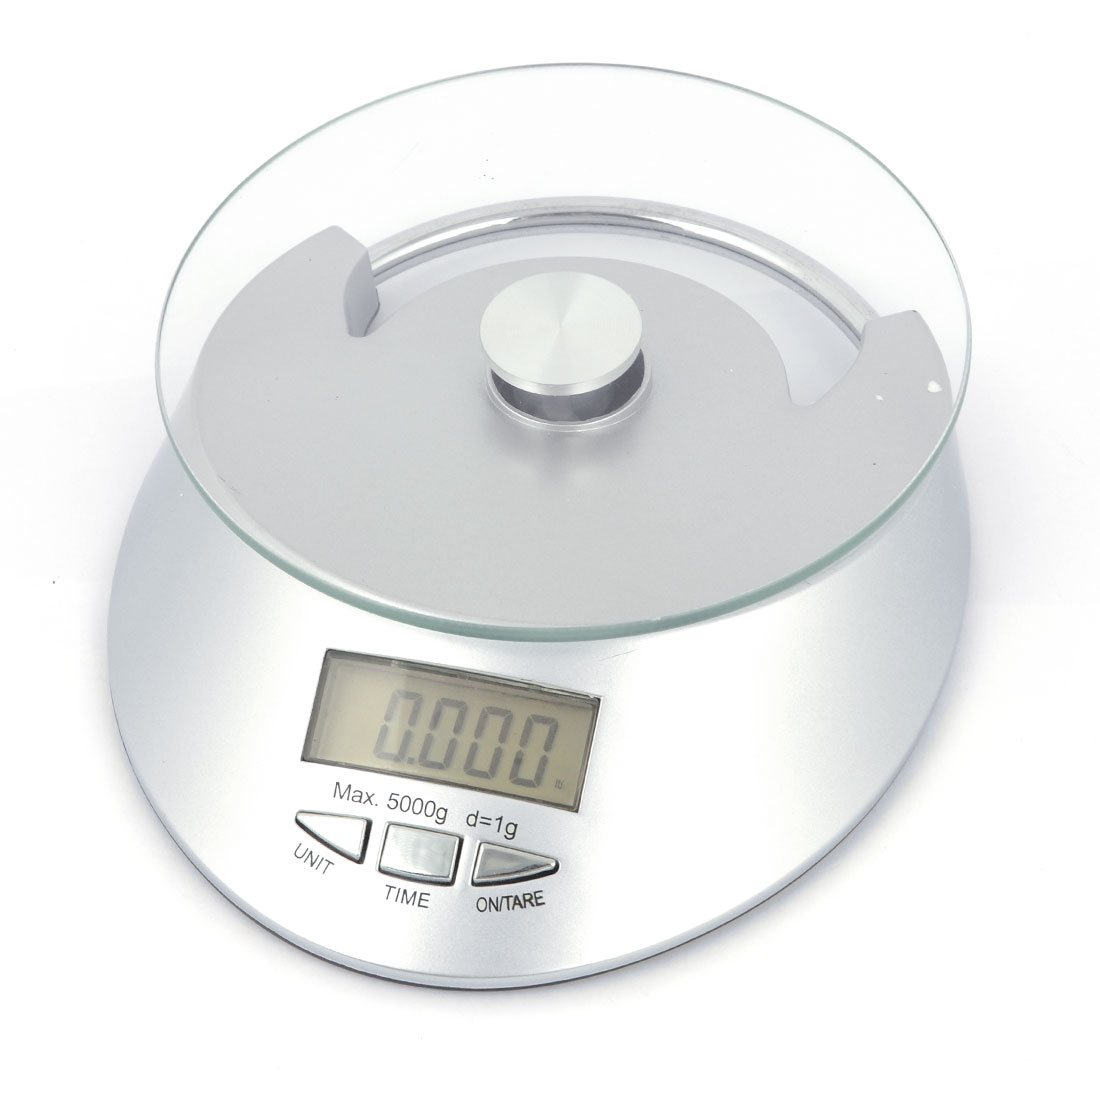 3Kg x 1g Kitchen Digital Electronic Weight Scale Kg oz lb g Silver Tone